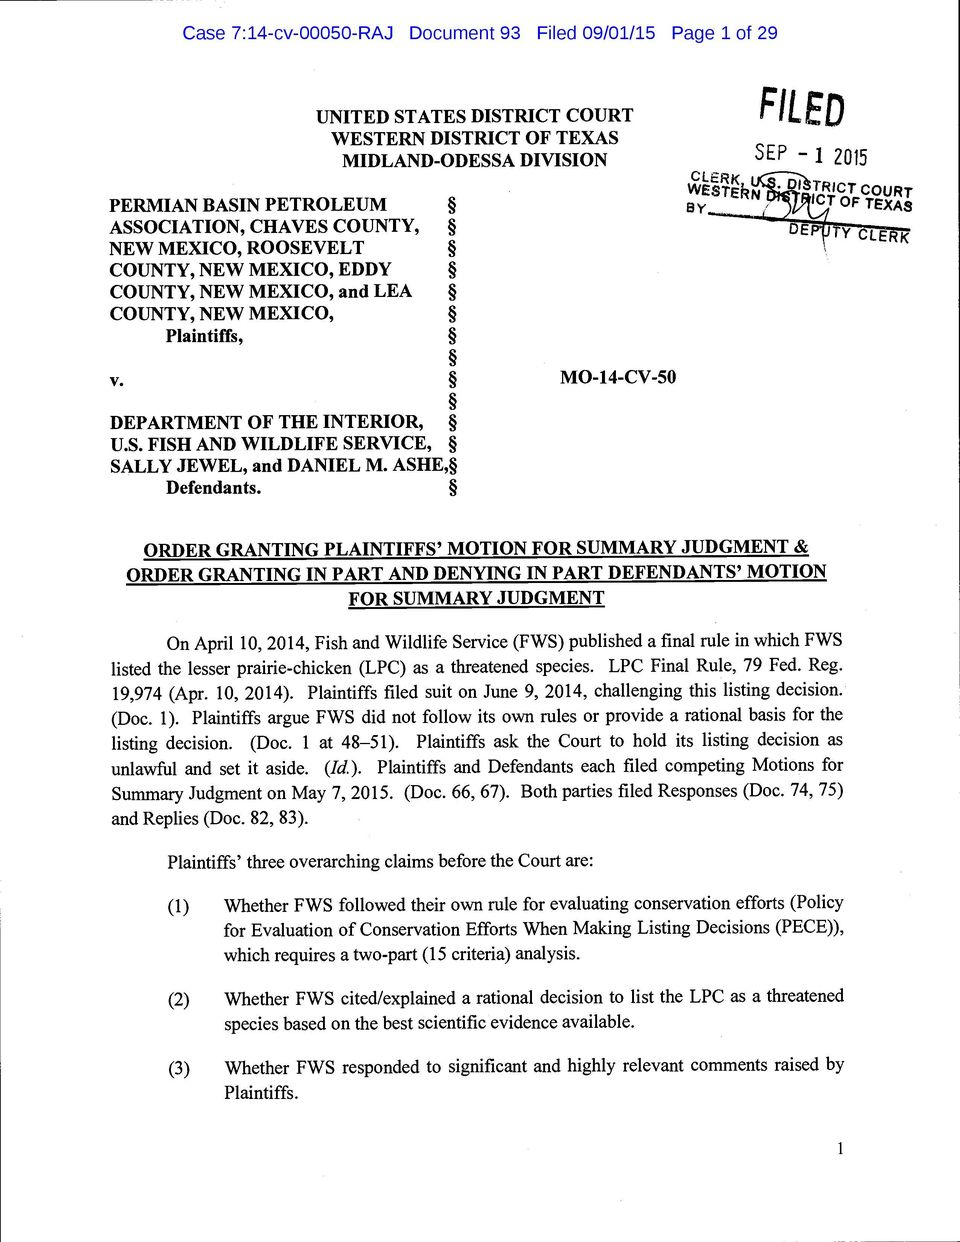 UNITED STATES DISTRICT COURT WESTERN DISTRICT OF TEXAS MIDLAND-ODESSA DIVISION MO-14-C V-SO SEP 1 2015 CLERK LTRgCT COURT WESTERN a'y ICT OF TEXAS DEP ry CLERK ORDER GRANTING PLAINTIFFS' MOTION FOR